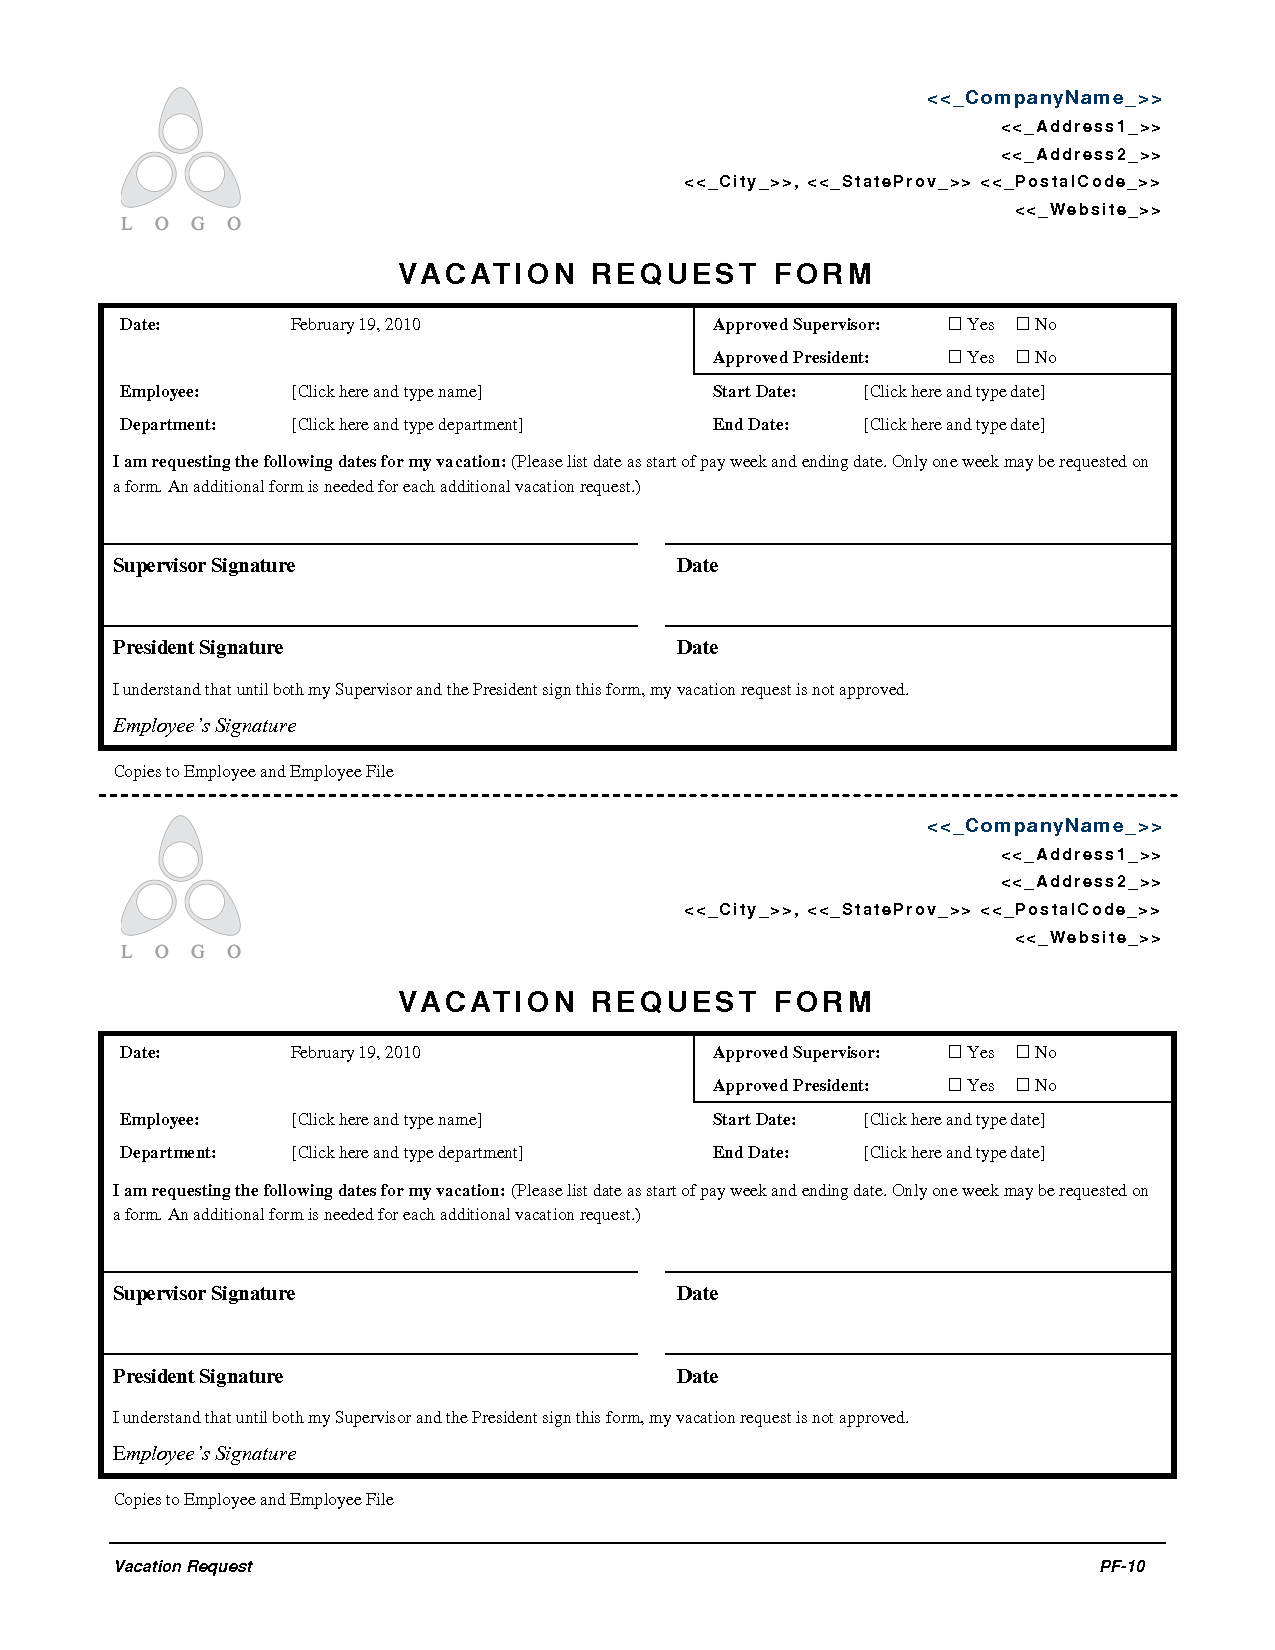 2010 employee vacation request form employee forms pinterest 2010 employee vacation request form yelopaper